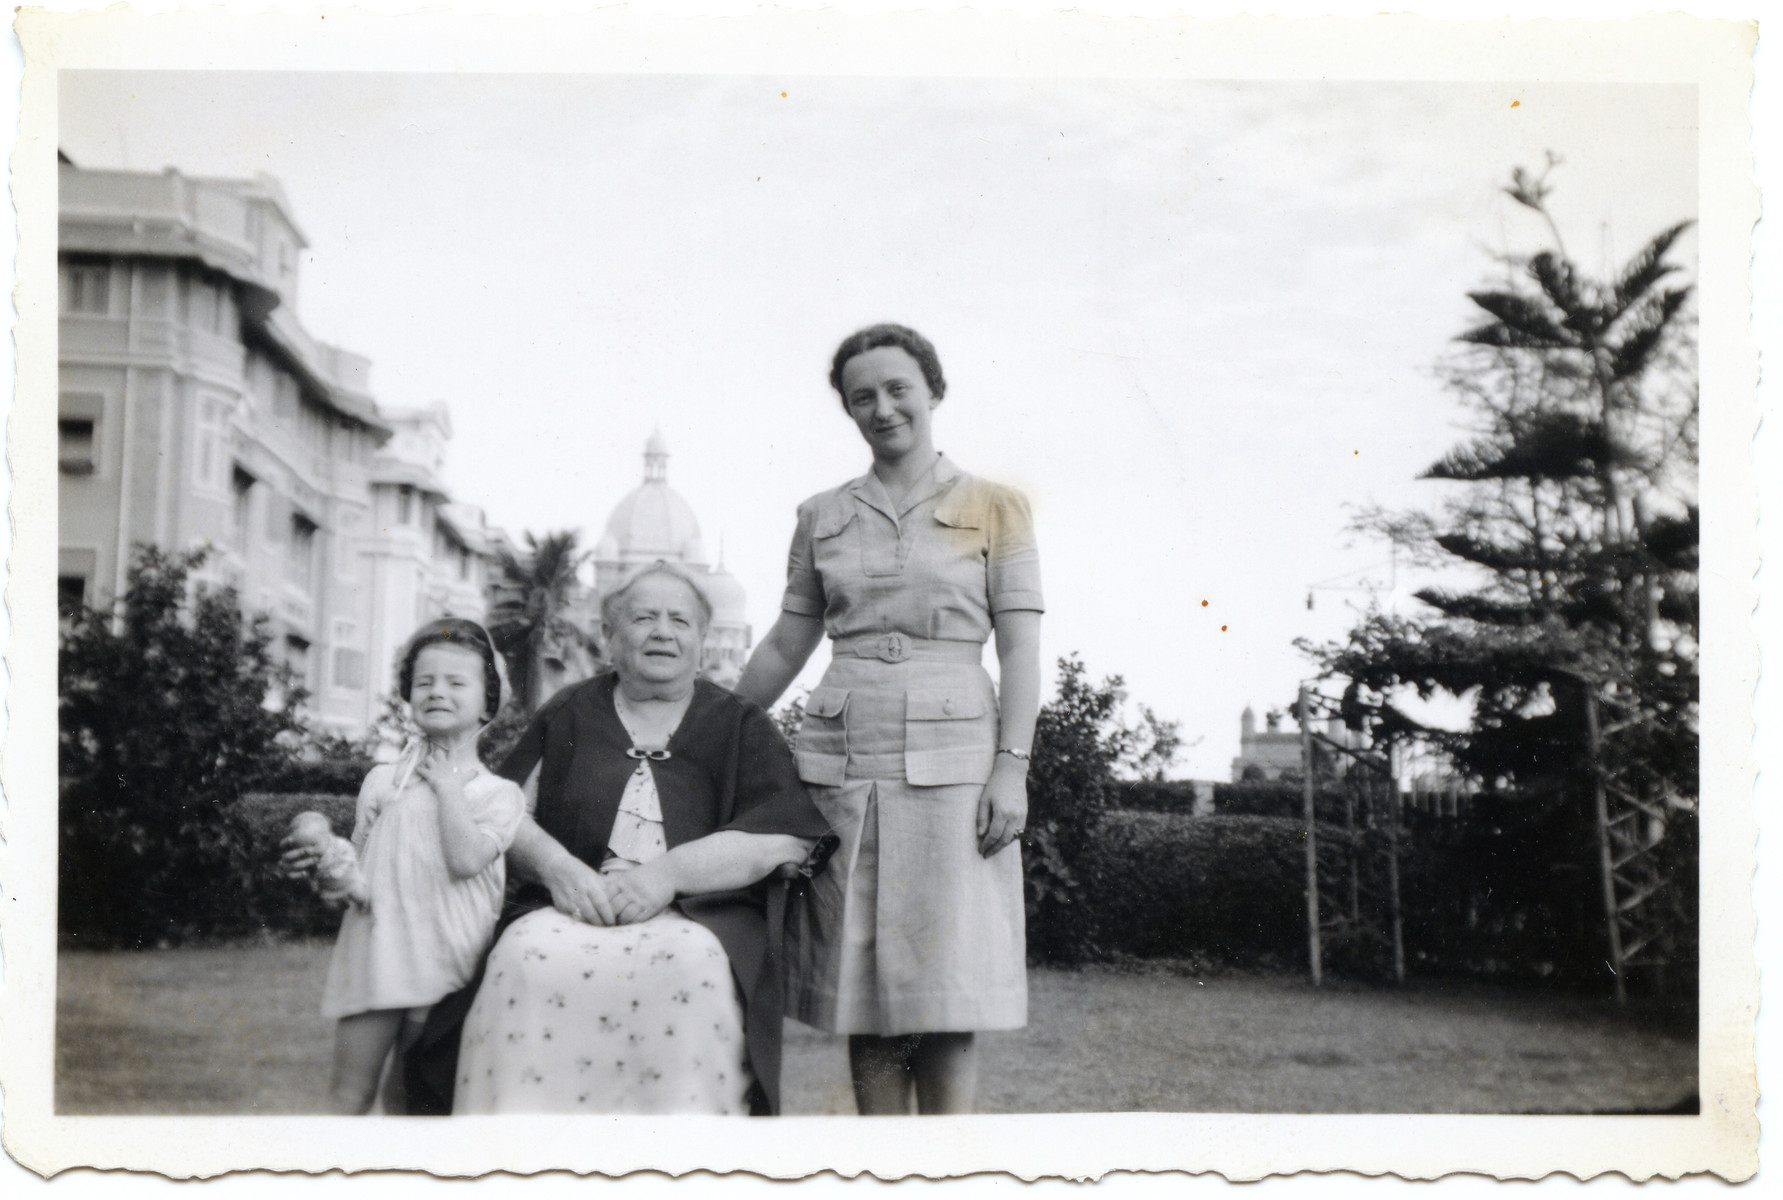 Three generations of a Jewish family escaping Nazi occupied Poland pose  near King George's Gate.  Pictured are Joanna Klein, her mother Nadzieja Klein and great aunt Elizawieta Palcew.